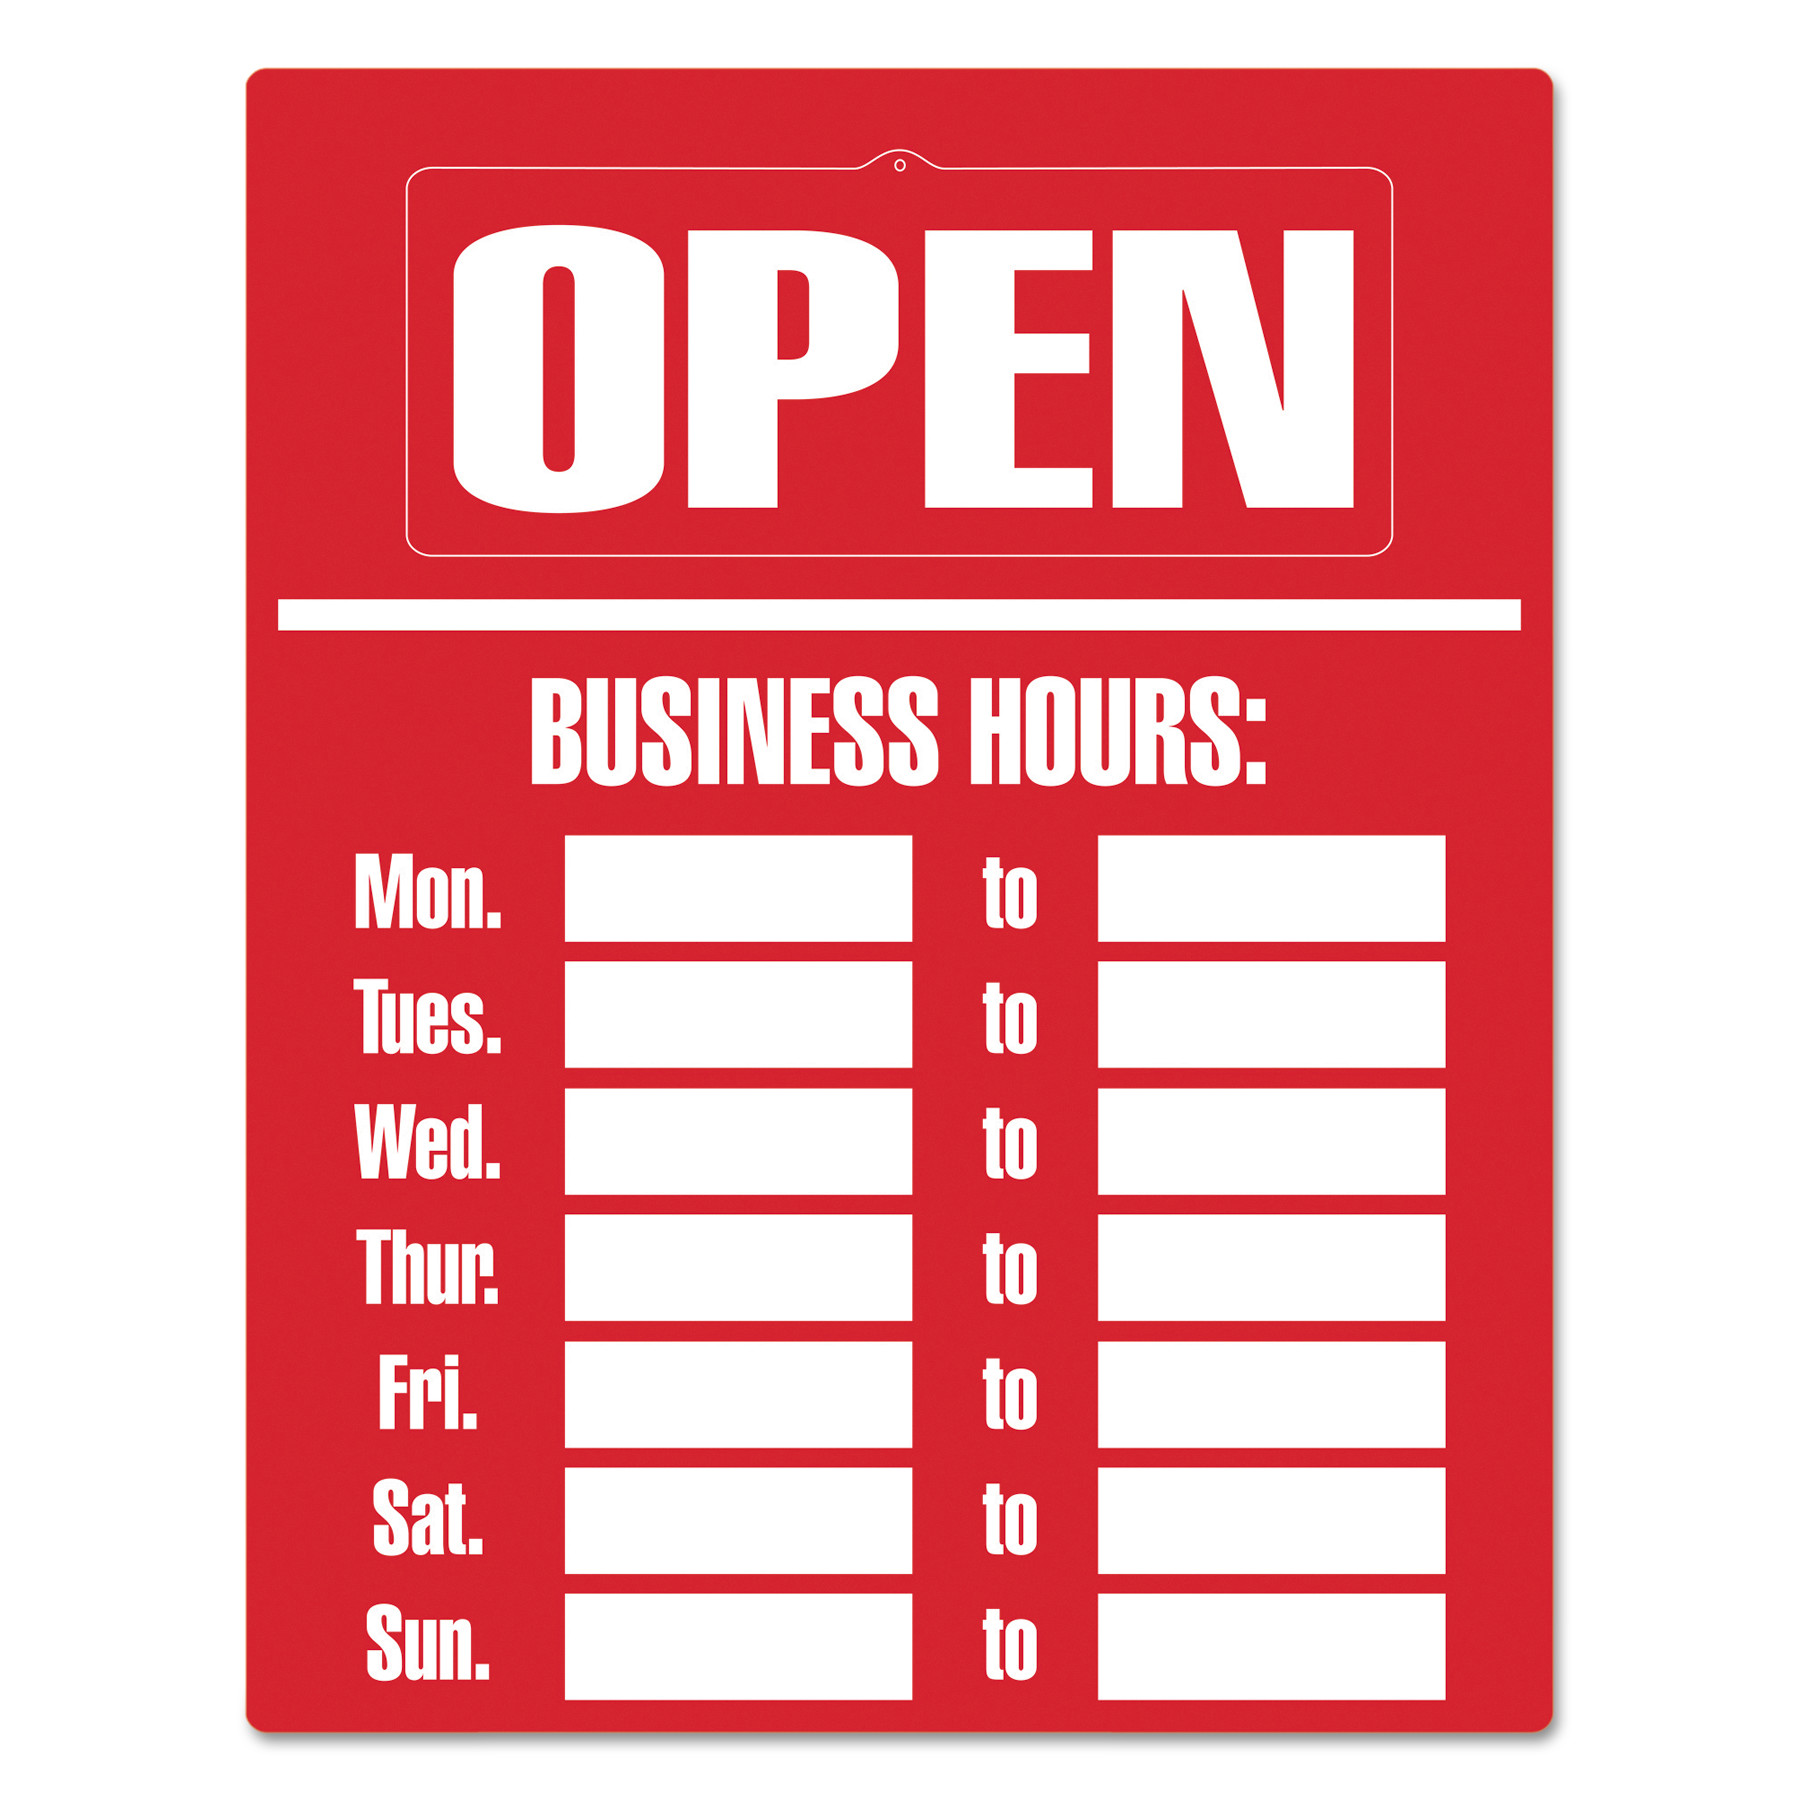 COSCO Business Hours Sign Kit, 15 x 19, Red -COS098072 by CONSOLIDATED STAMP